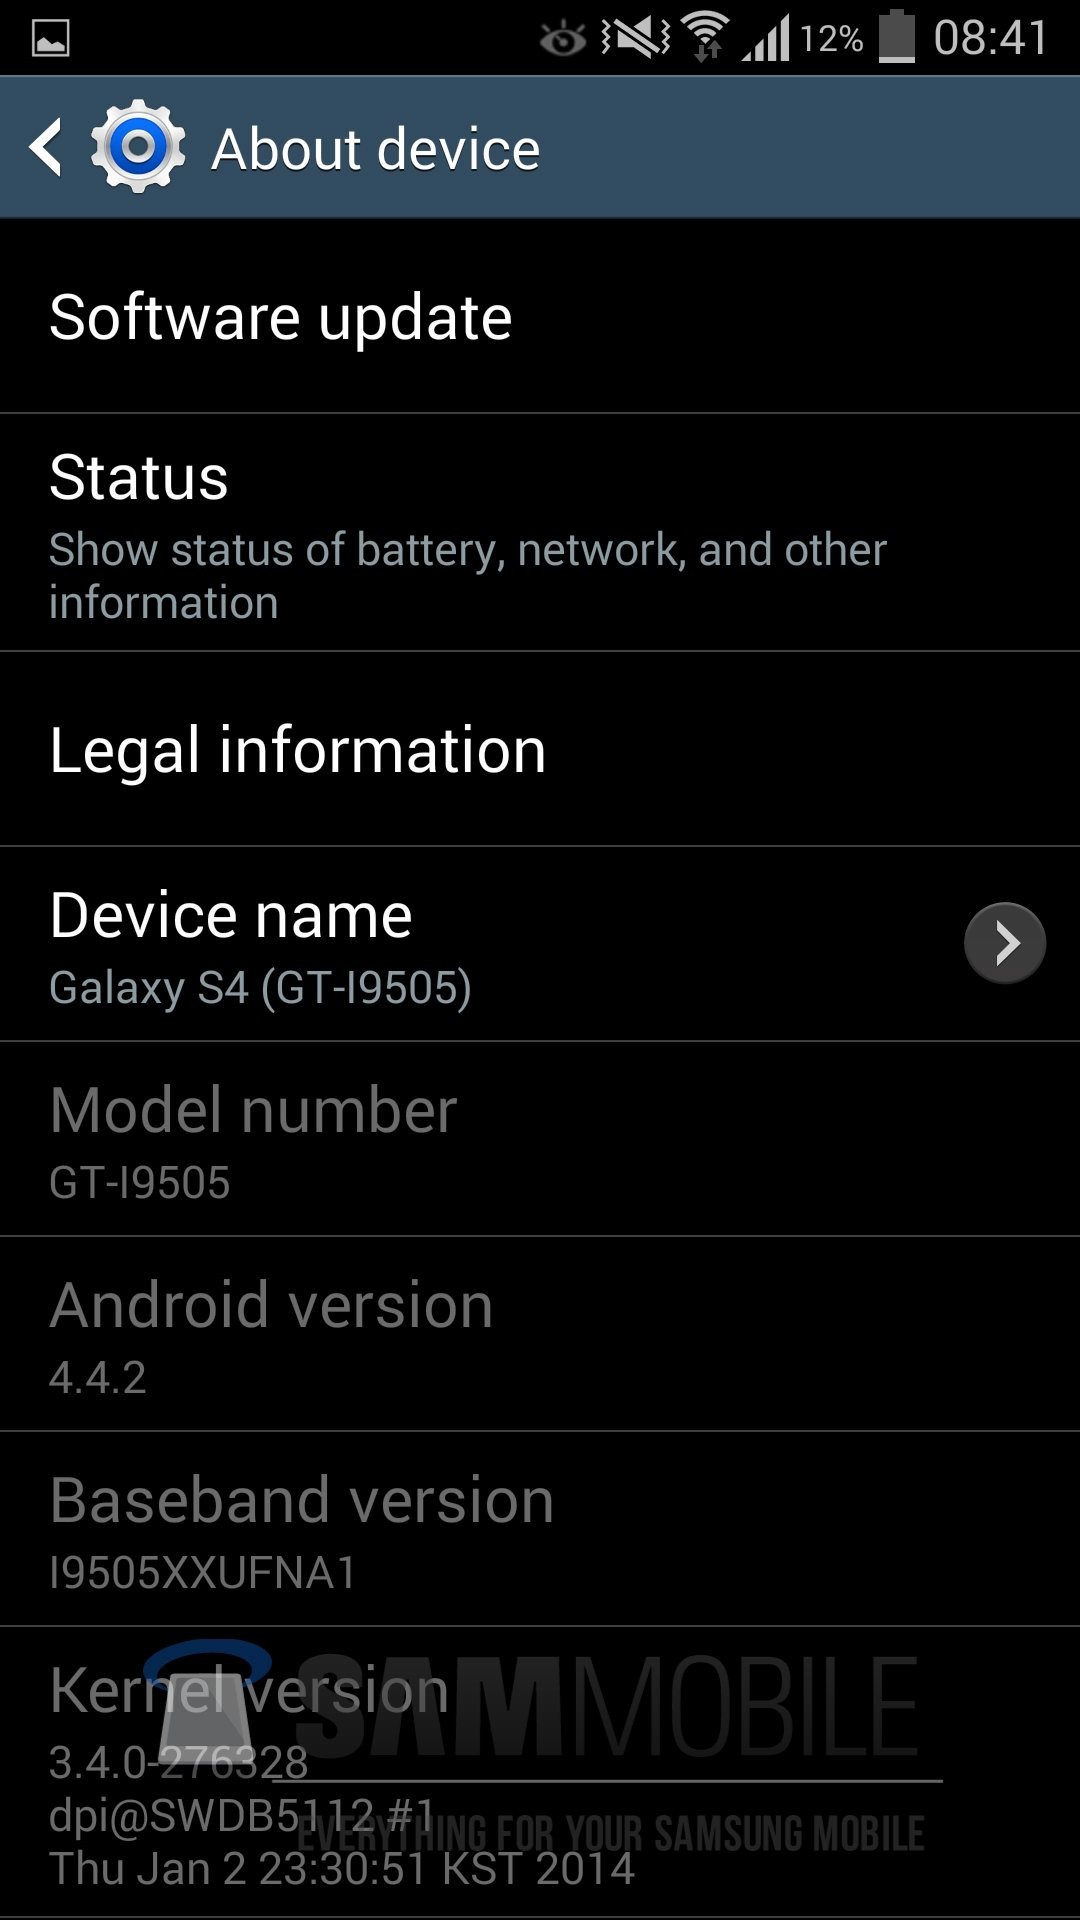 Leaked Android 4.4 Build For The Galaxy S4 Shows White Icons In The